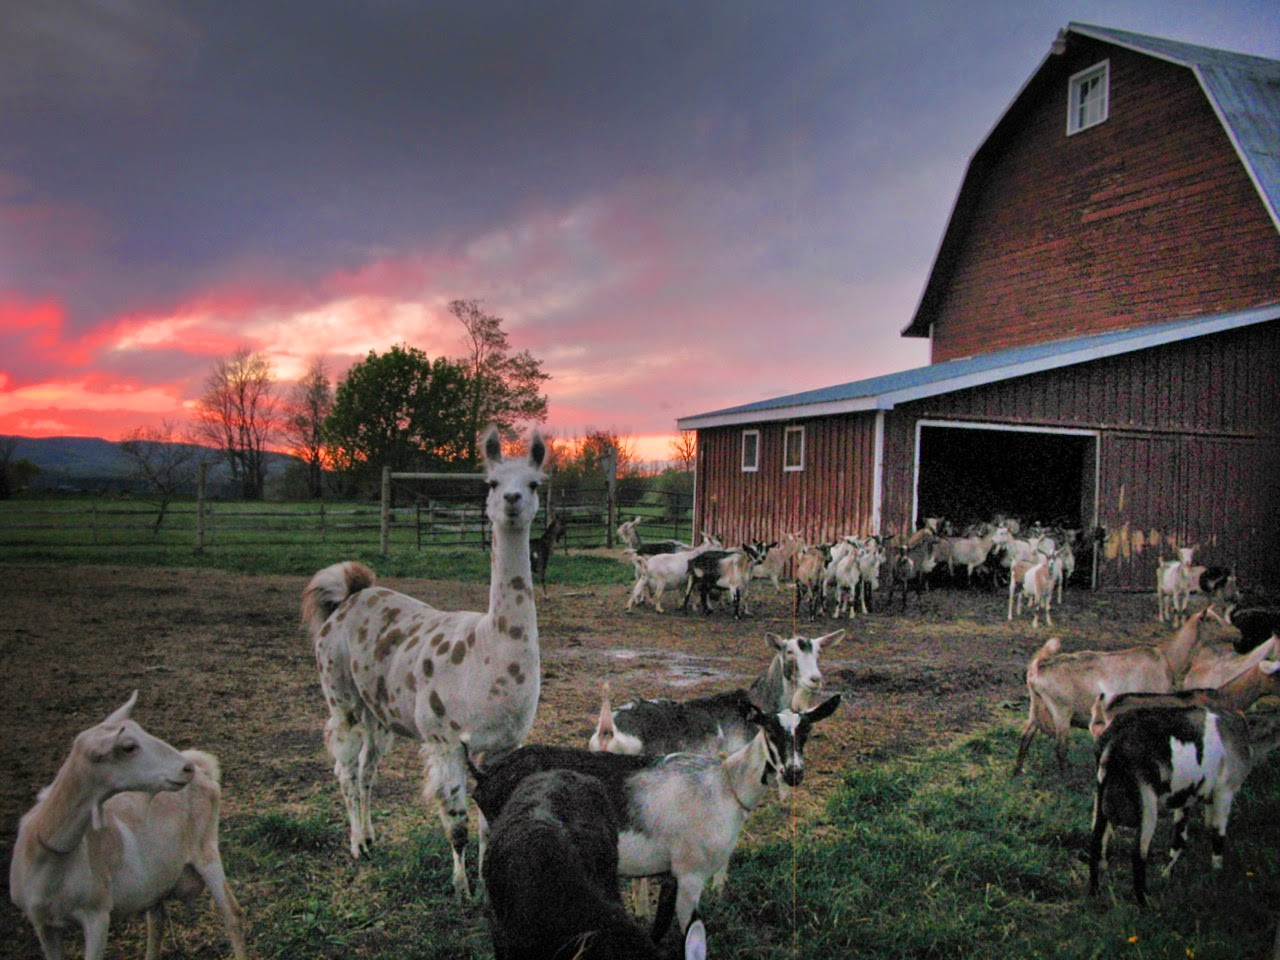 http://modernfarmer.com/2013/09/10-things-ive-learned-goat-beekman-boys/